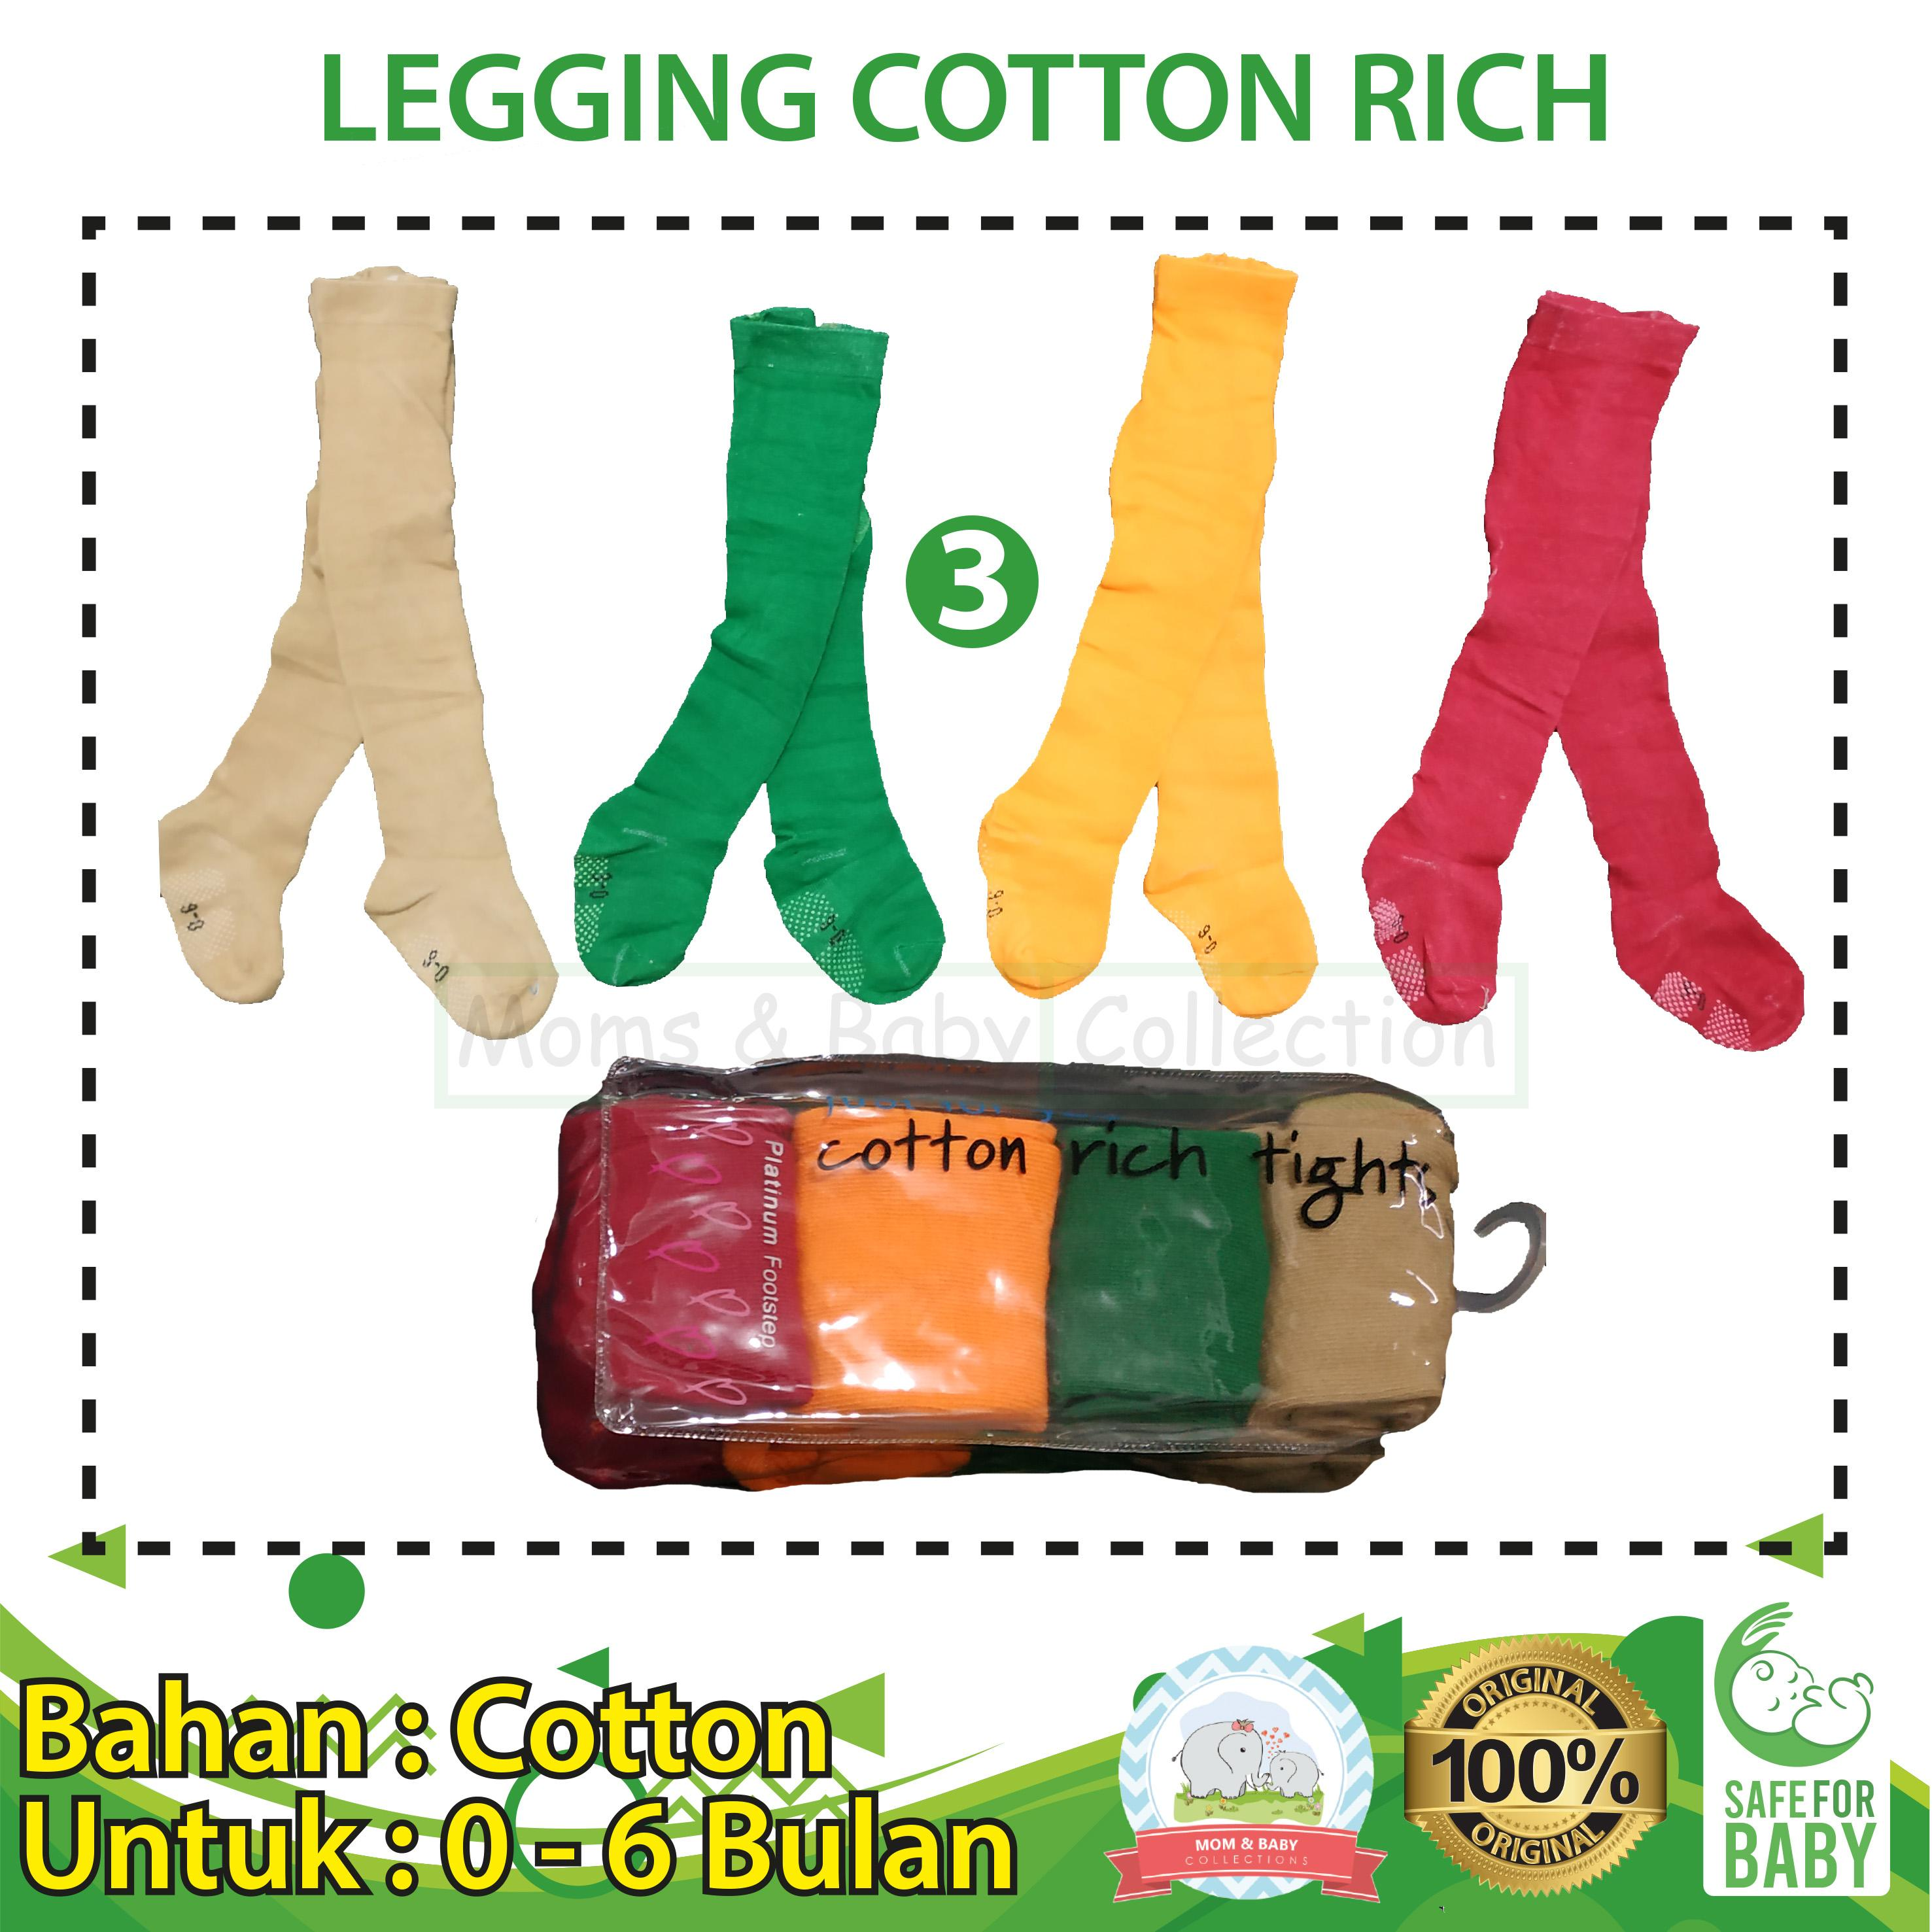 Legging Bayi Cotton Rich 4 In 1 Uk 0 - 6 Bulan By Mom & Baby Collections.